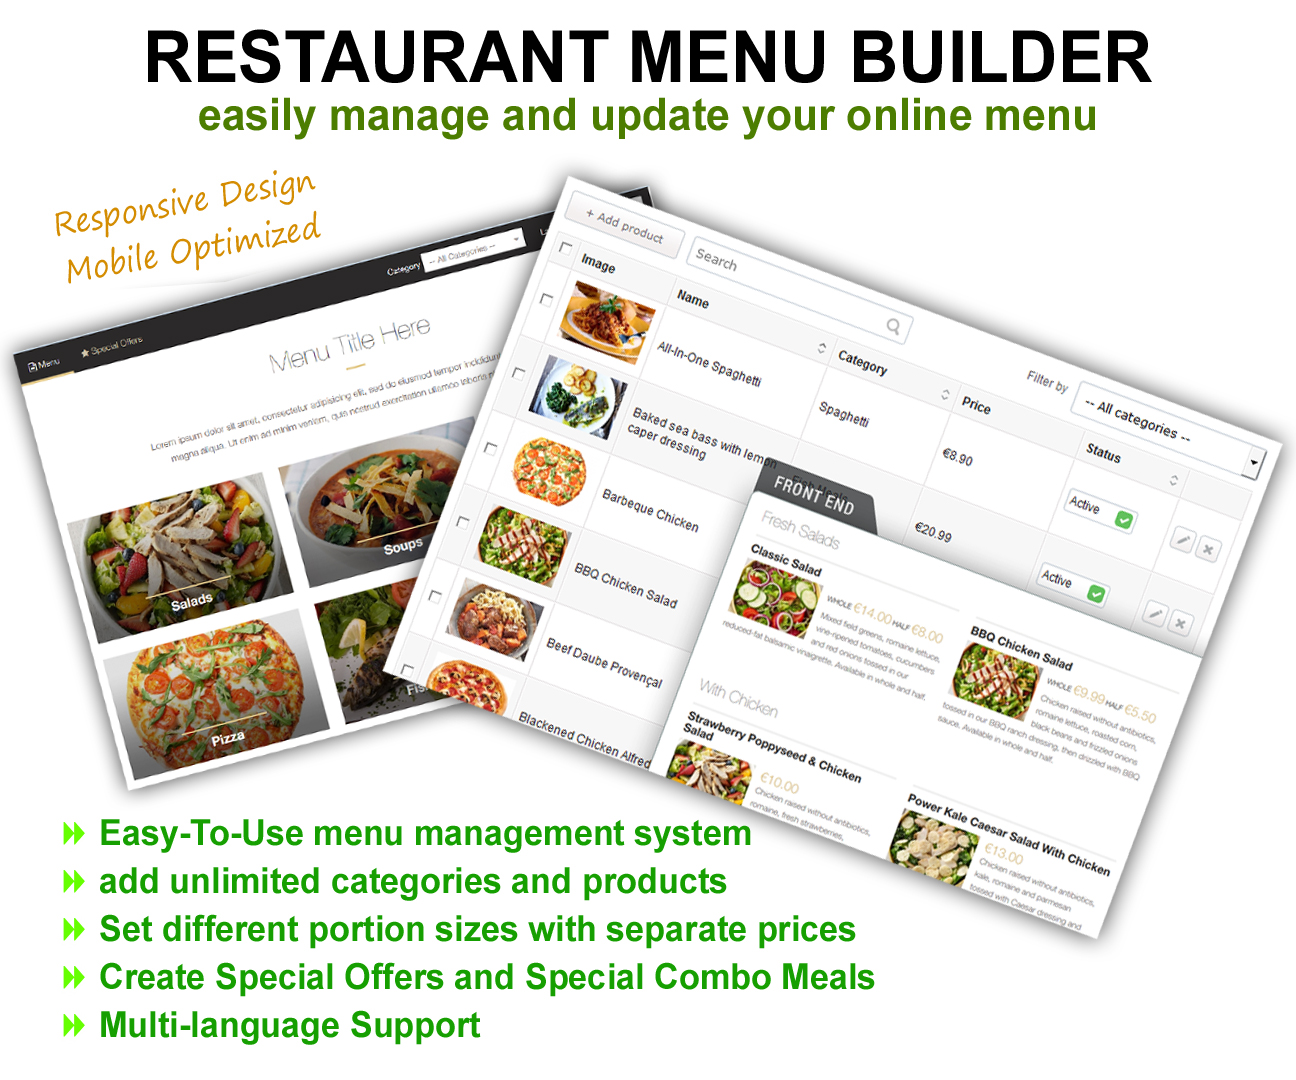 Restaurant Menu Builder